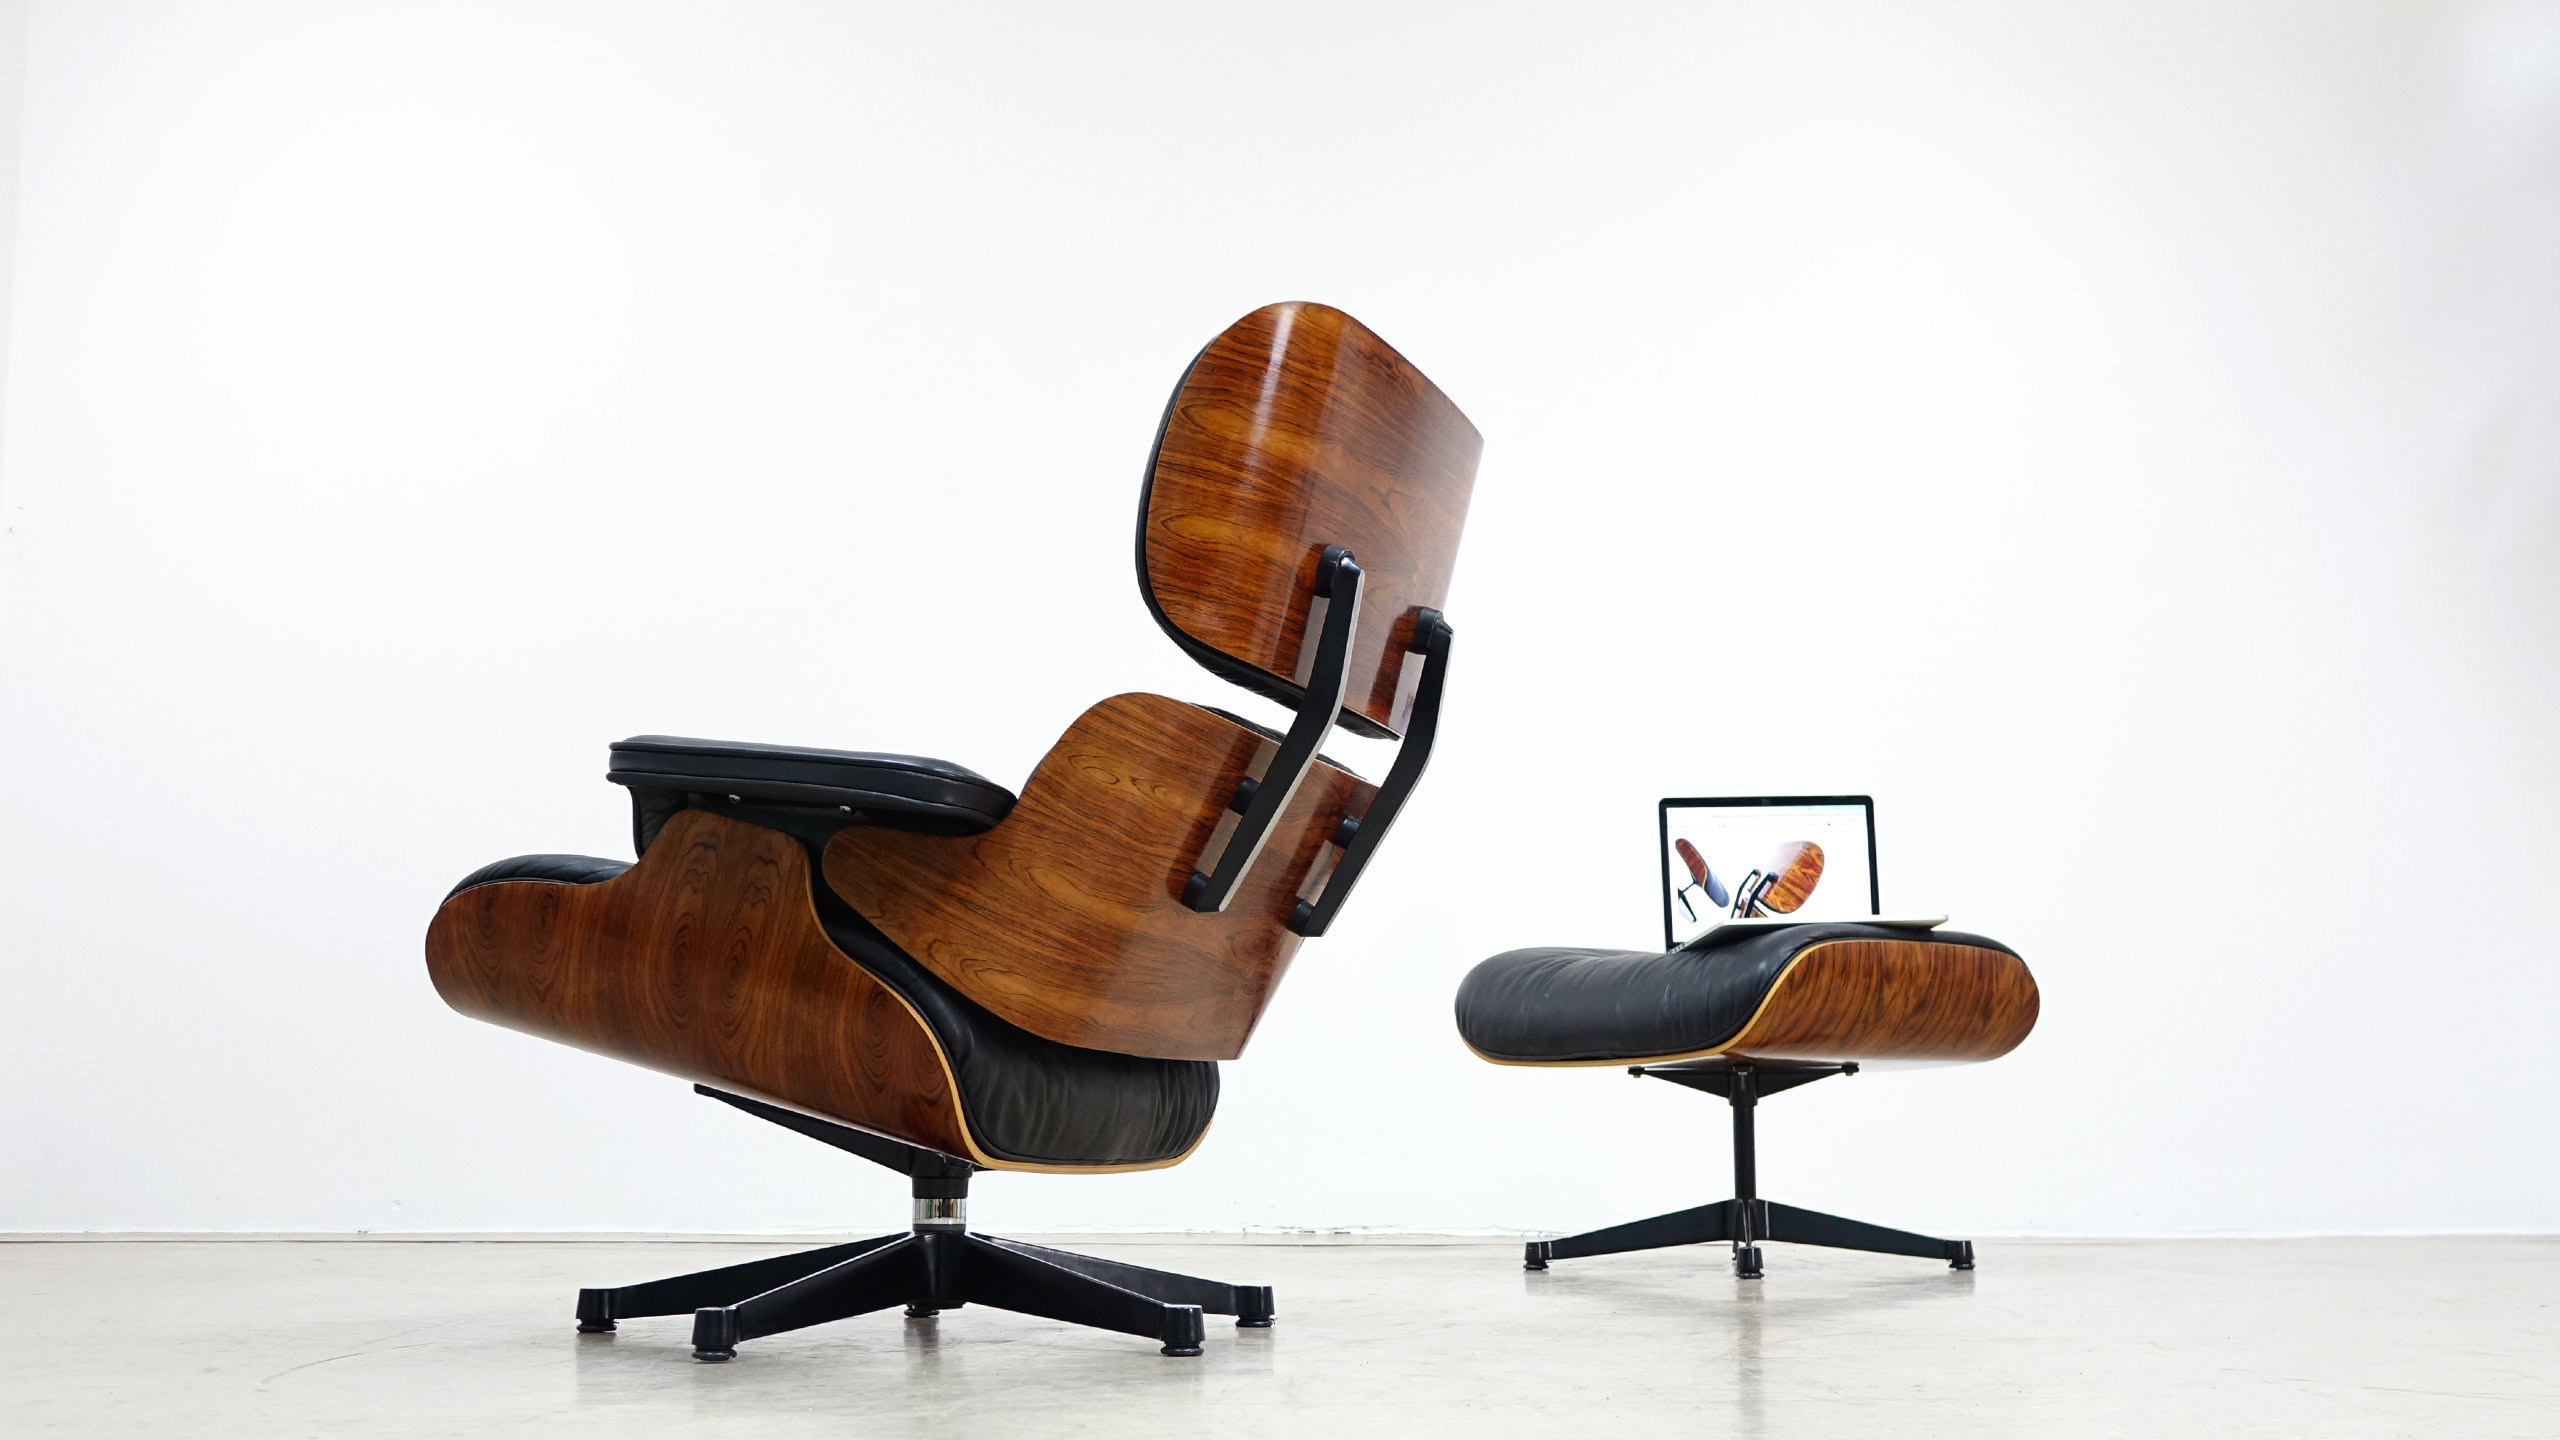 Charles eames lounge chair ottoman by vitra for Eames lounge sessel nachbau